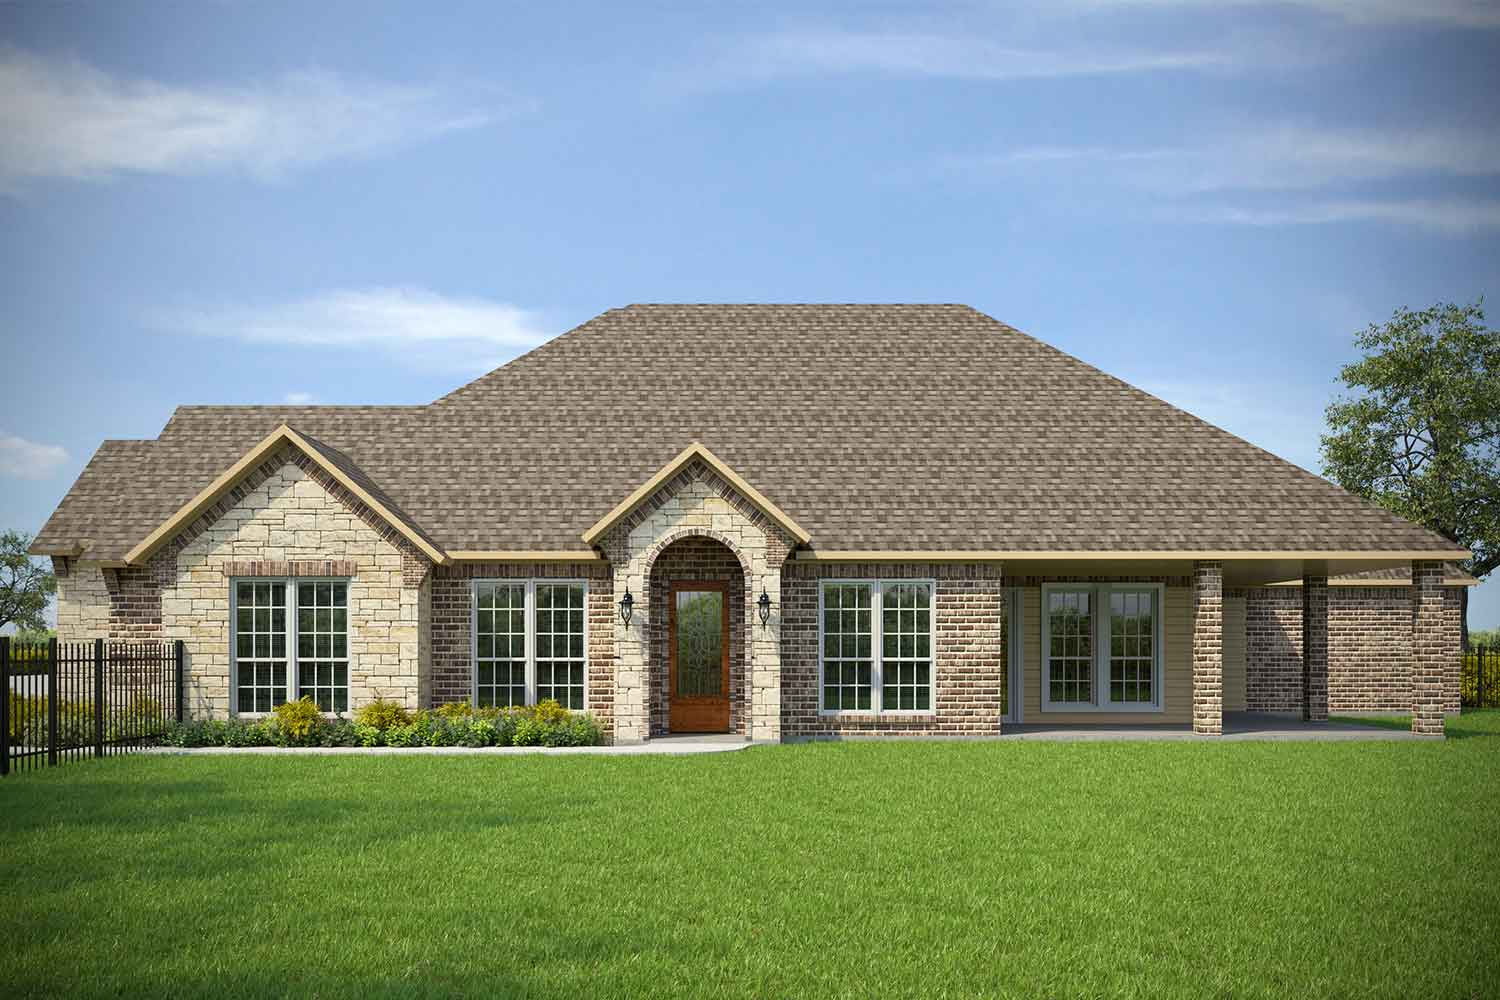 New Homes for Sale in Georgetown TX | 609 Scenic Bluff Dr